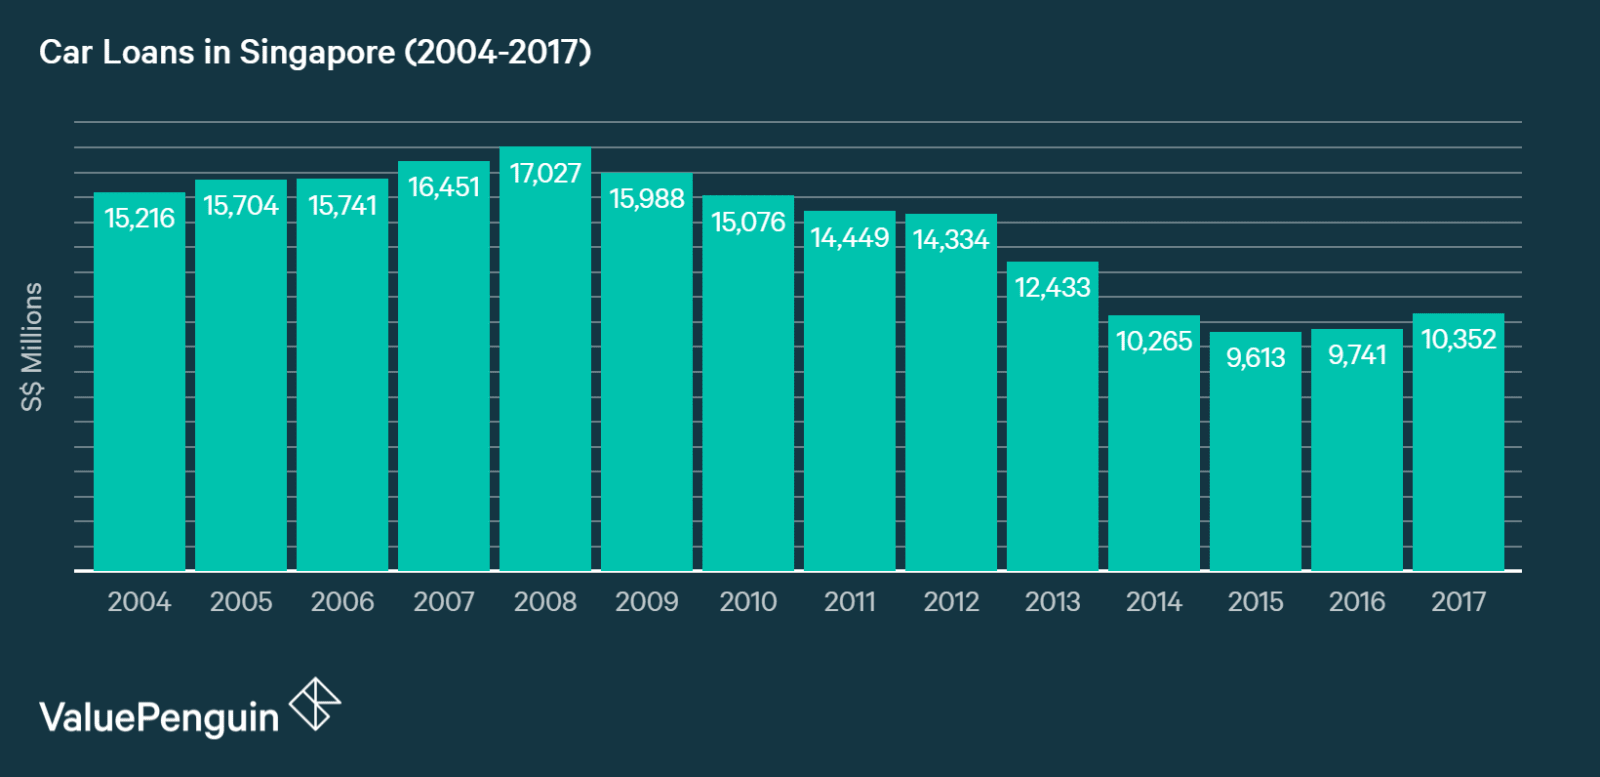 A graph showing growth of total car loans in Singapore from 2004-2017